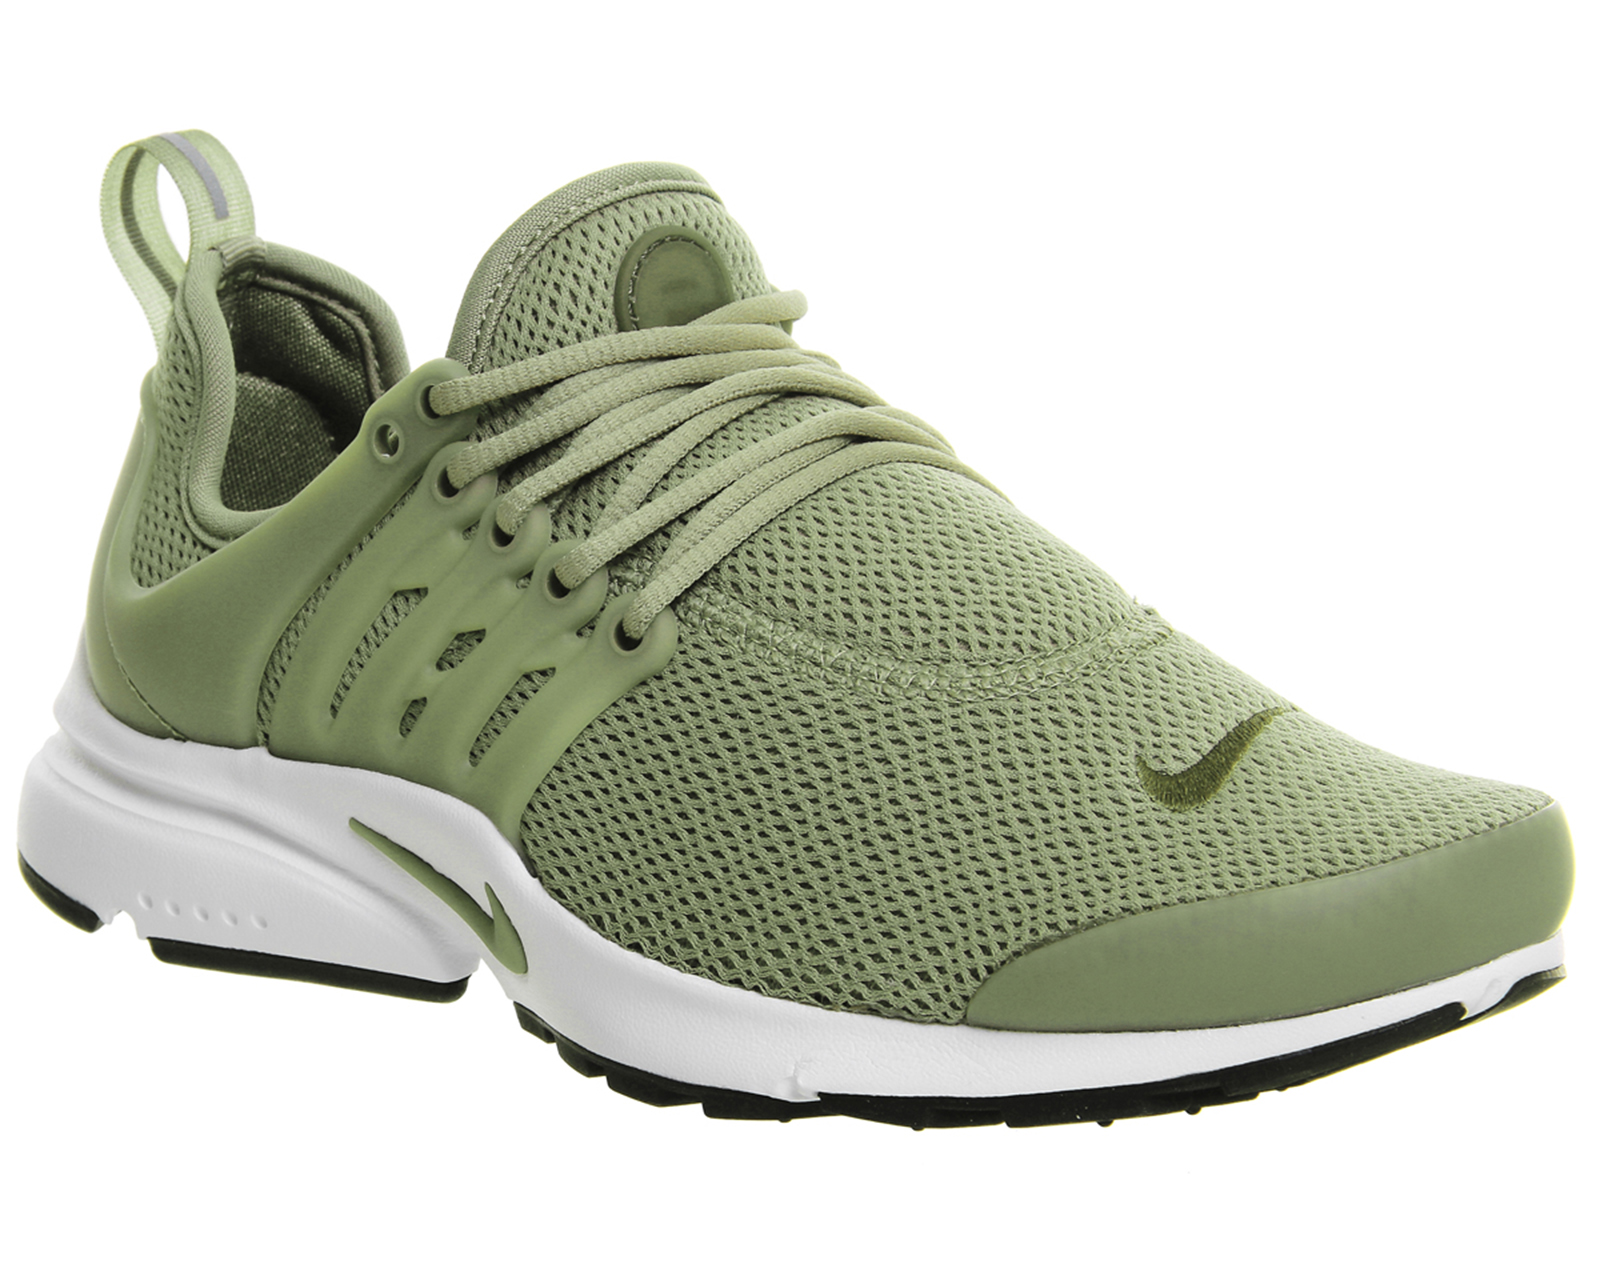 Nike Air Presto Green : Nike Shoes and Sneakers on Sale ...